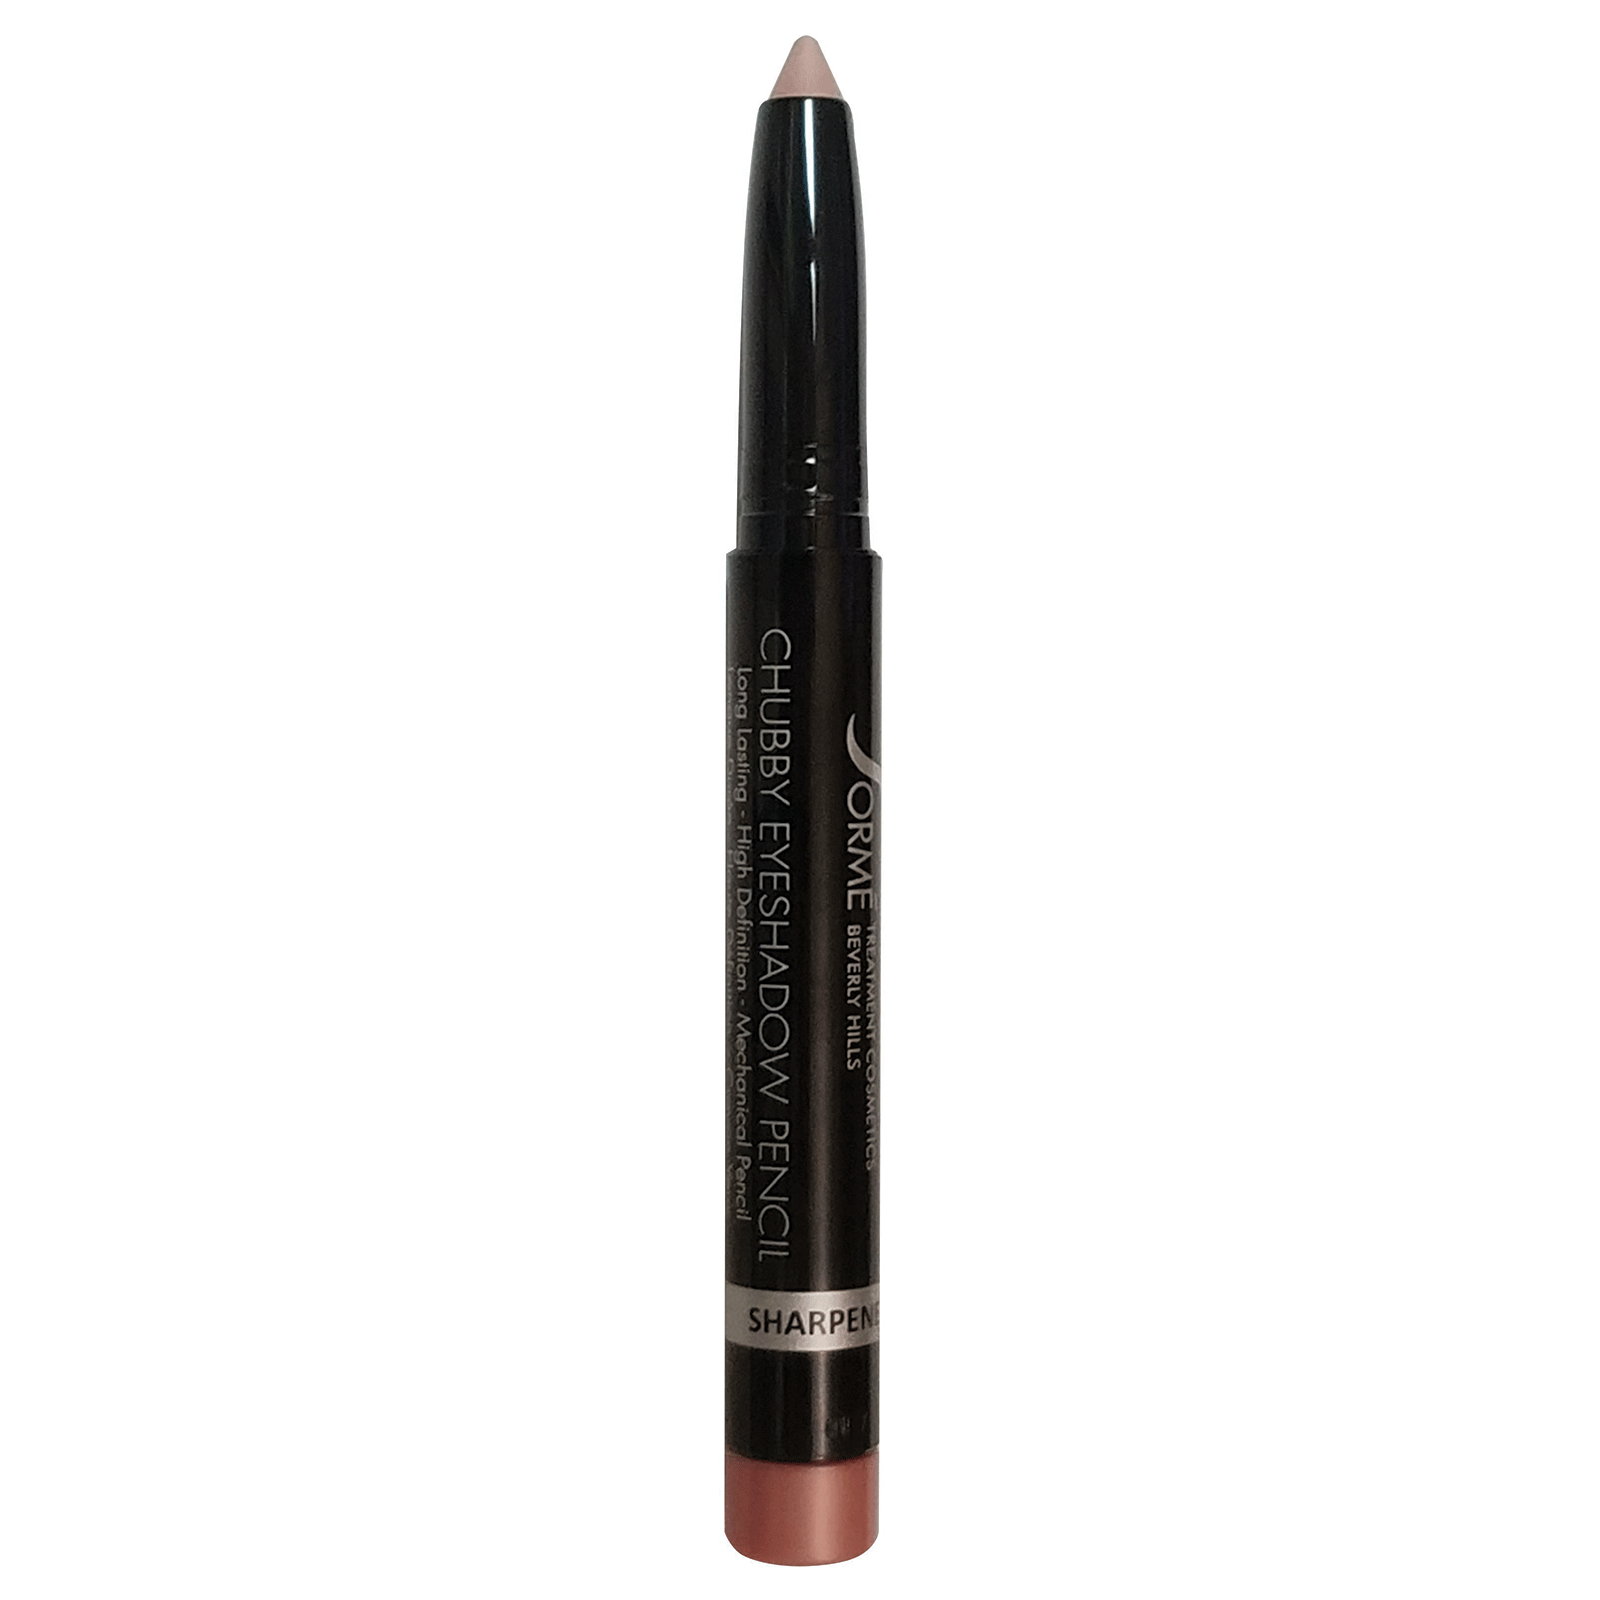 Flirting Game Chubby Eyeshadow Pencil